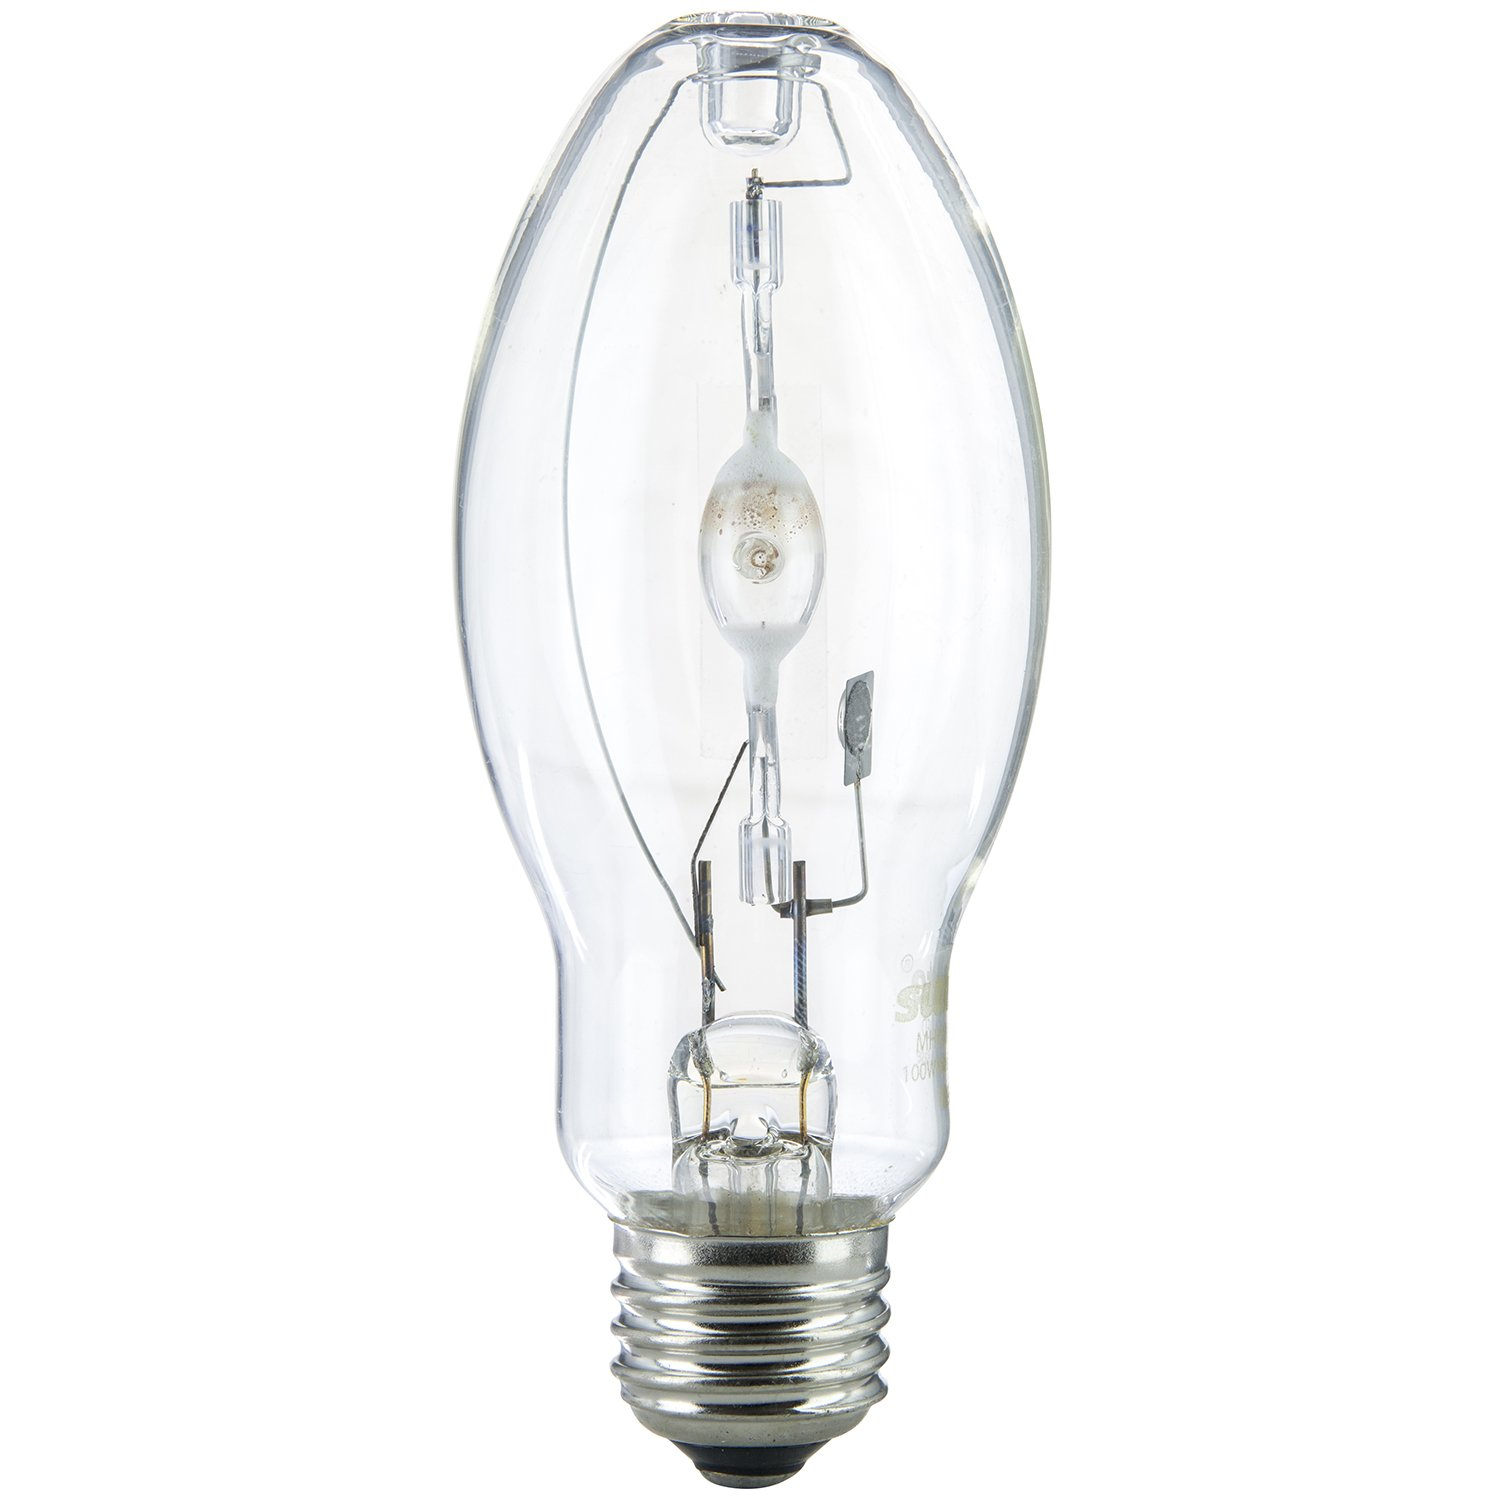 Sunlite MH70/U/MED 70-Watt Metal Halide ED17 Bulb, Medium Base, Clear